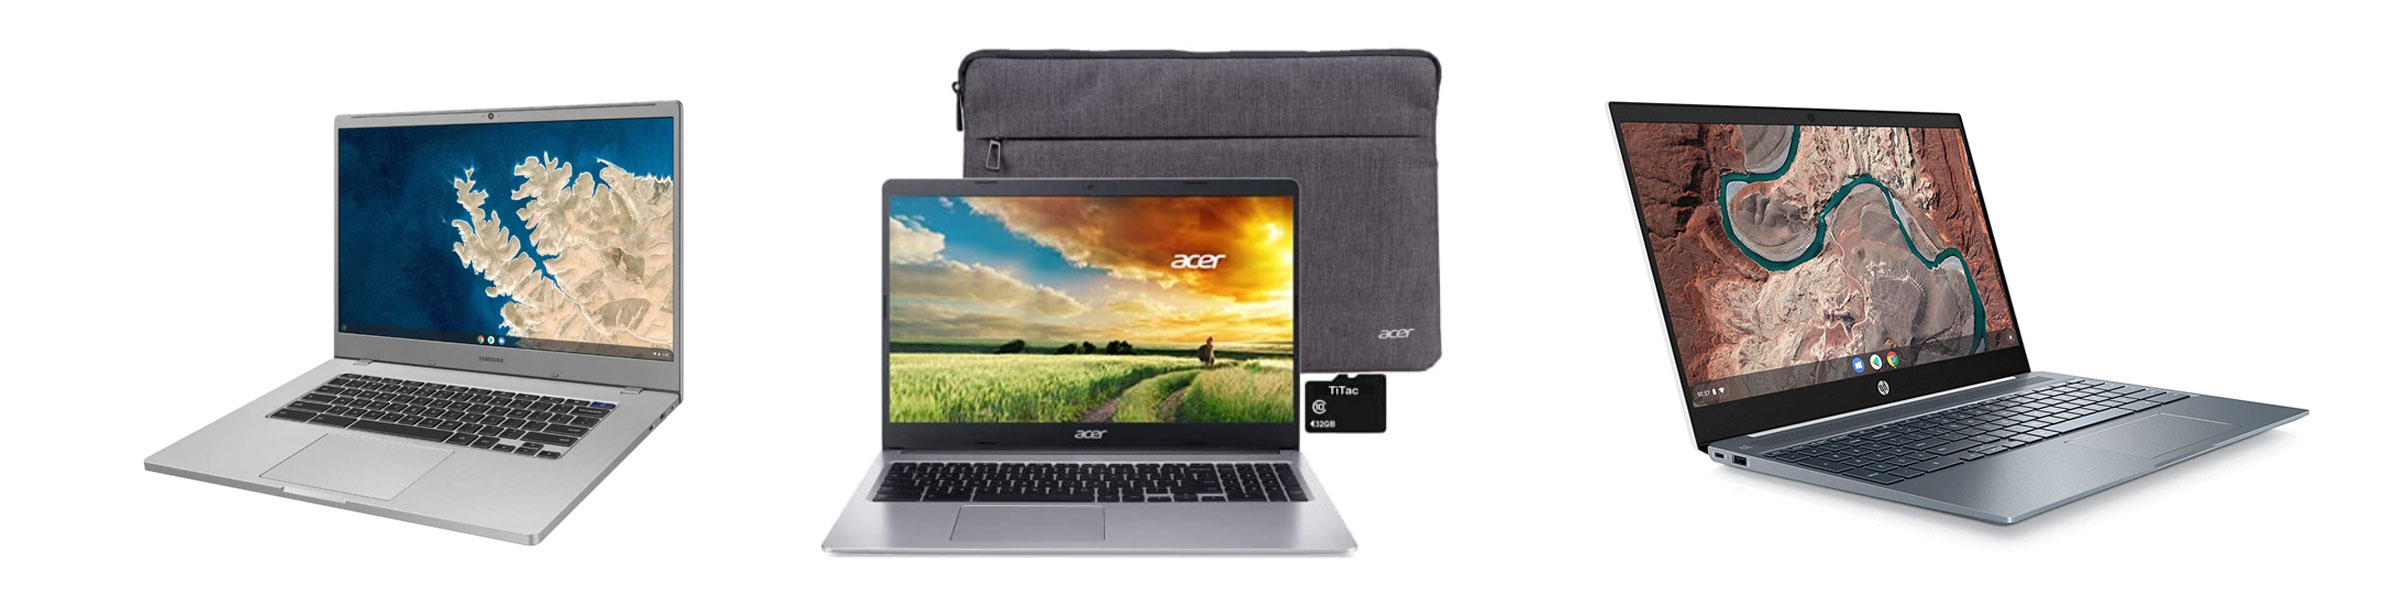 Budget 15-inch ChromeBooks from Samsung, Acer and HP, from left to right